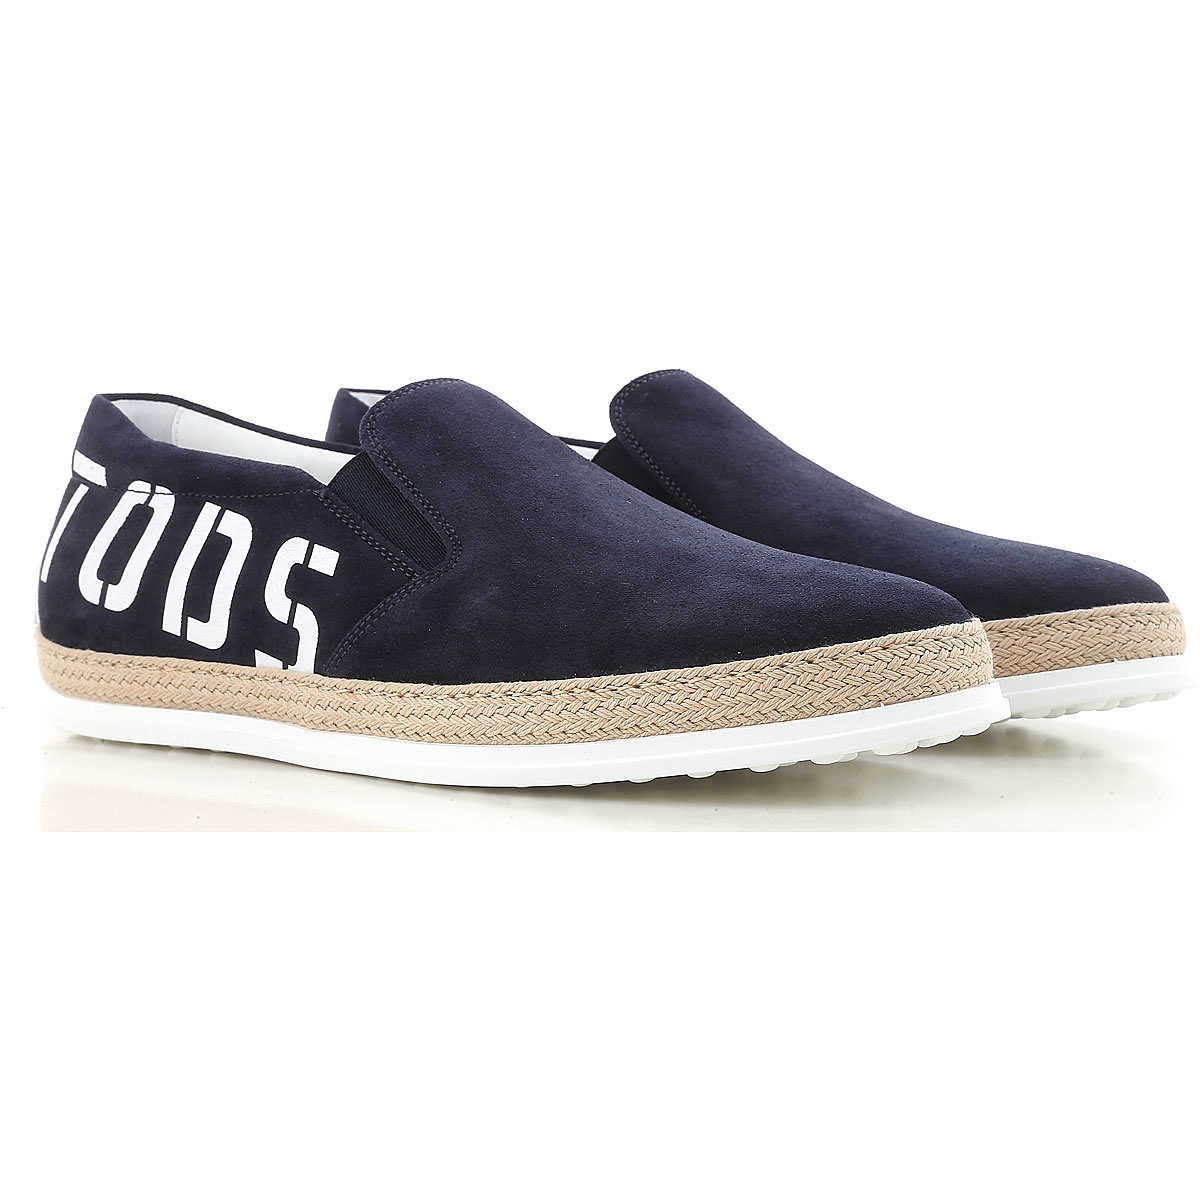 Tods Slip on Sneakers for Men On Sale galaxy blue - GOOFASH